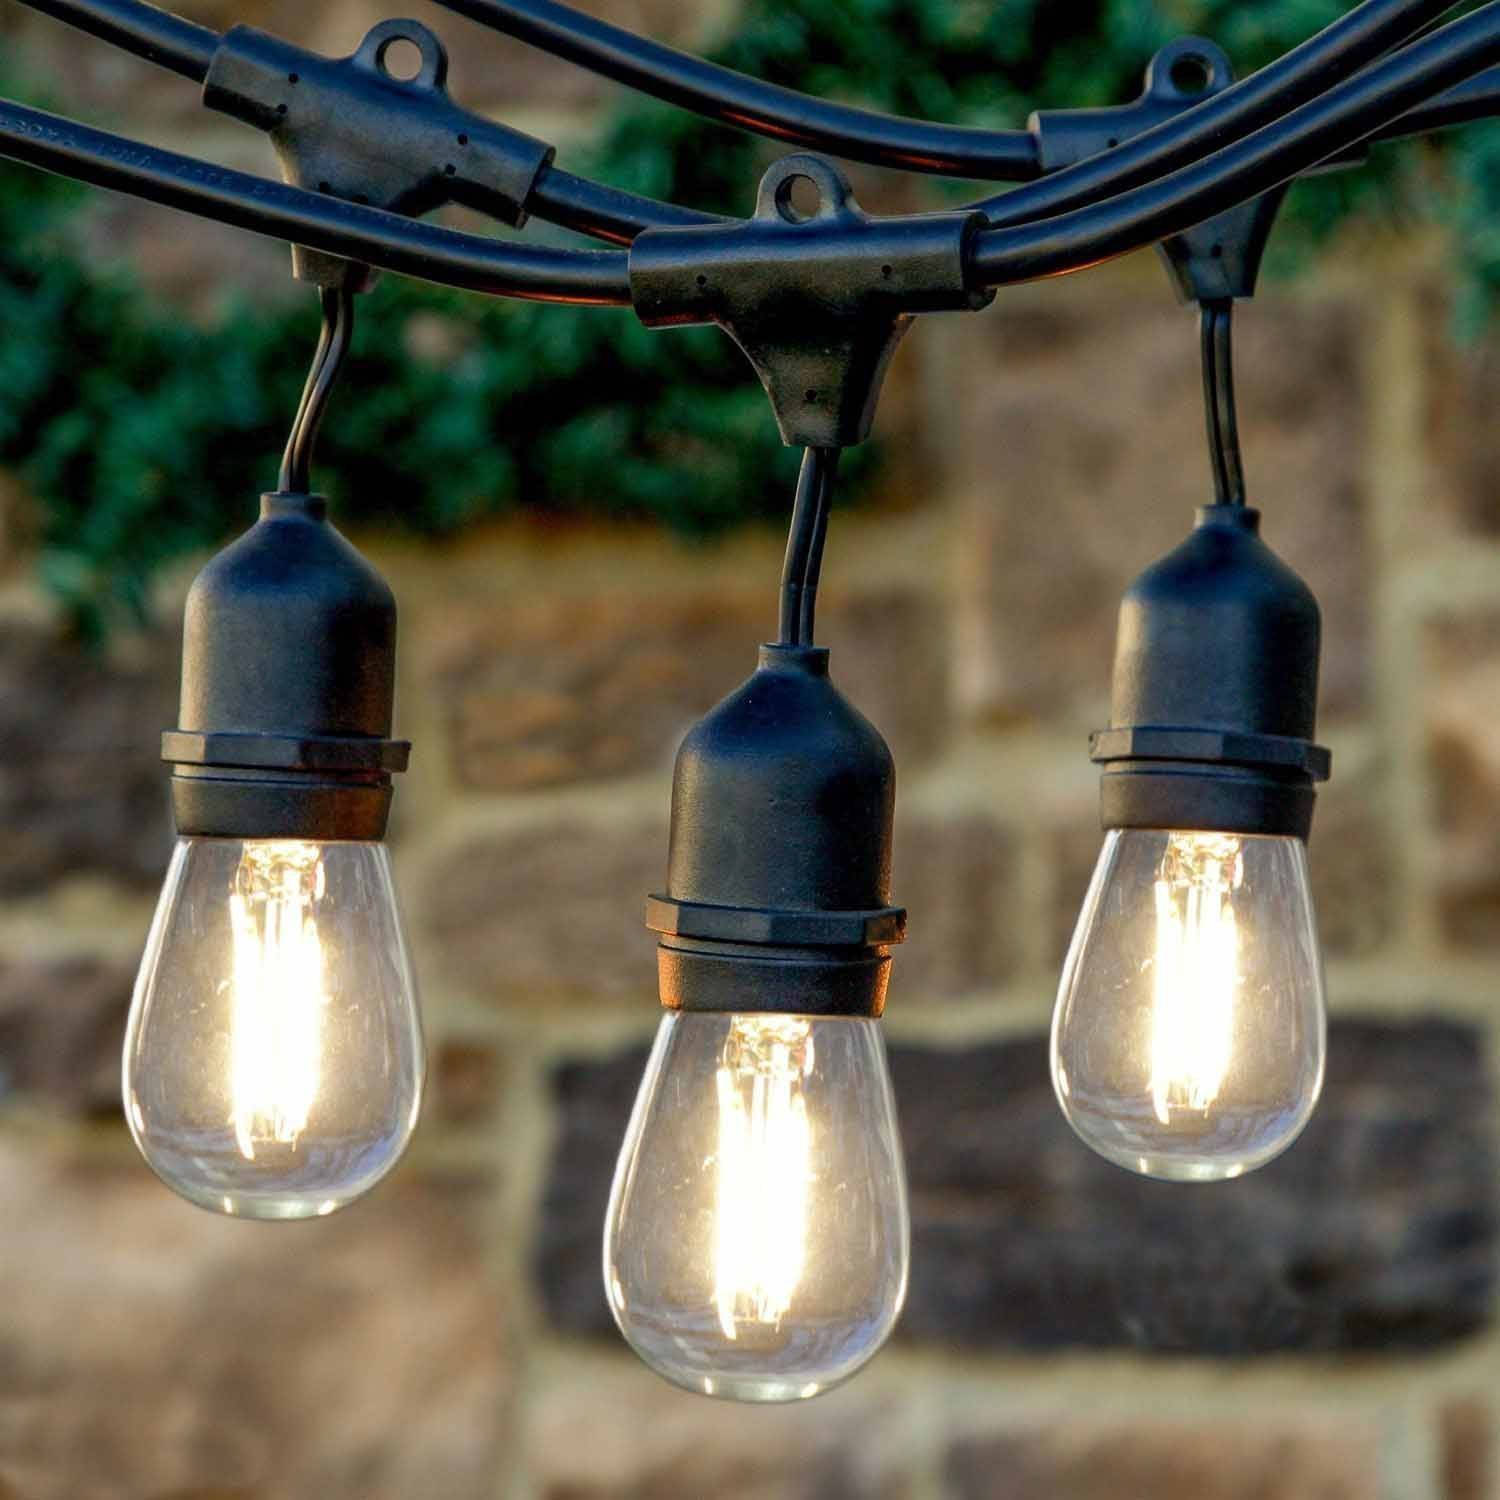 Outdoor String Lights Mains: 10 Adventages Of Commercial String Lights Outdoor